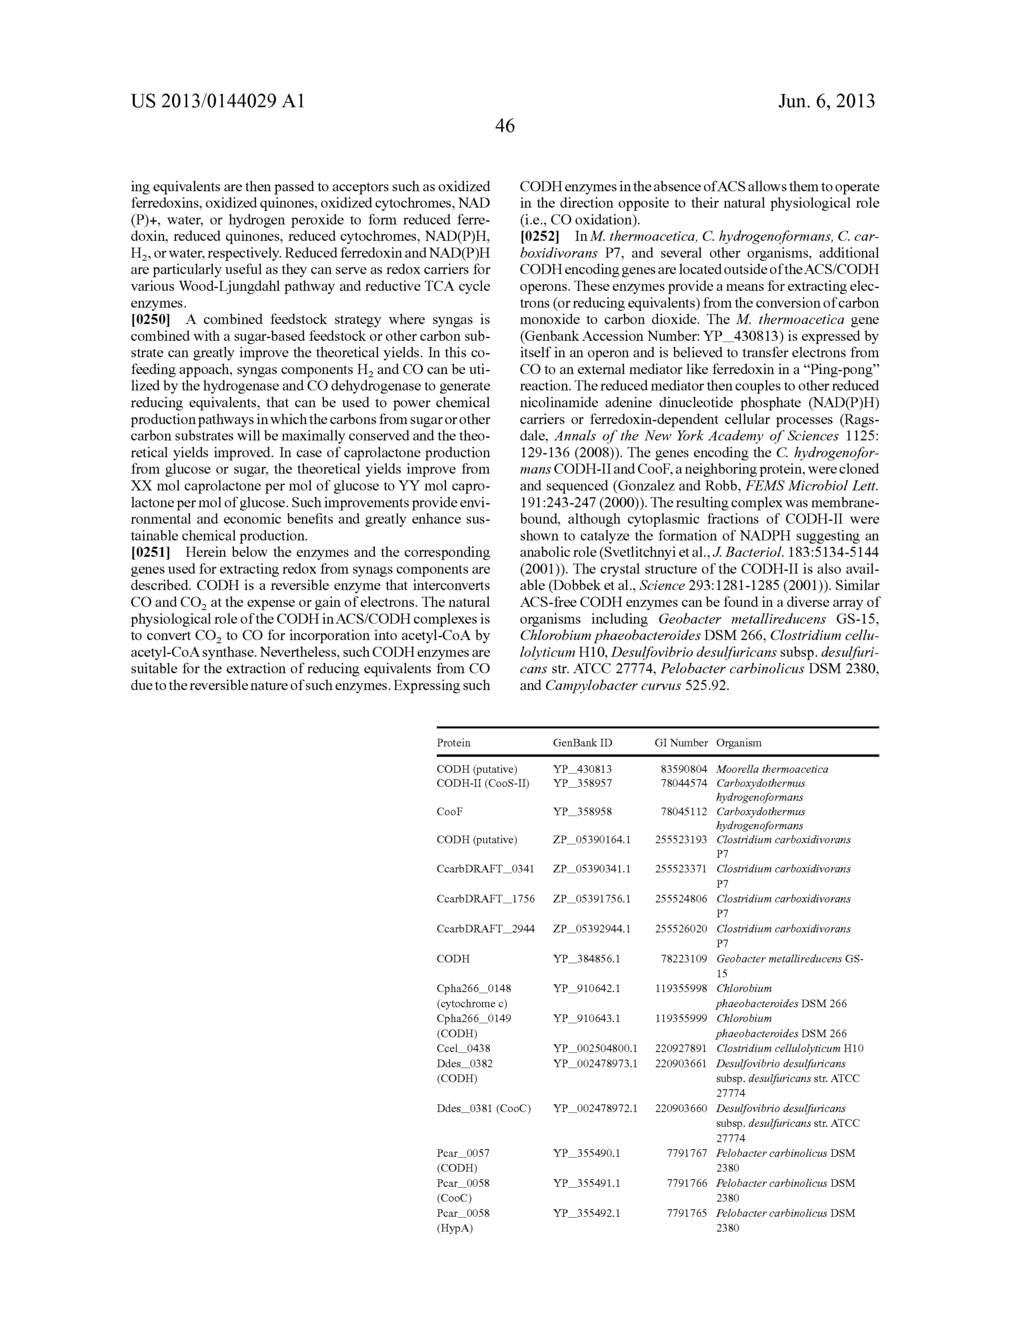 MICROORGANISMS AND METHODS FOR THE PRODUCTION OF CAPROLACTONE - diagram, schematic, and image 56